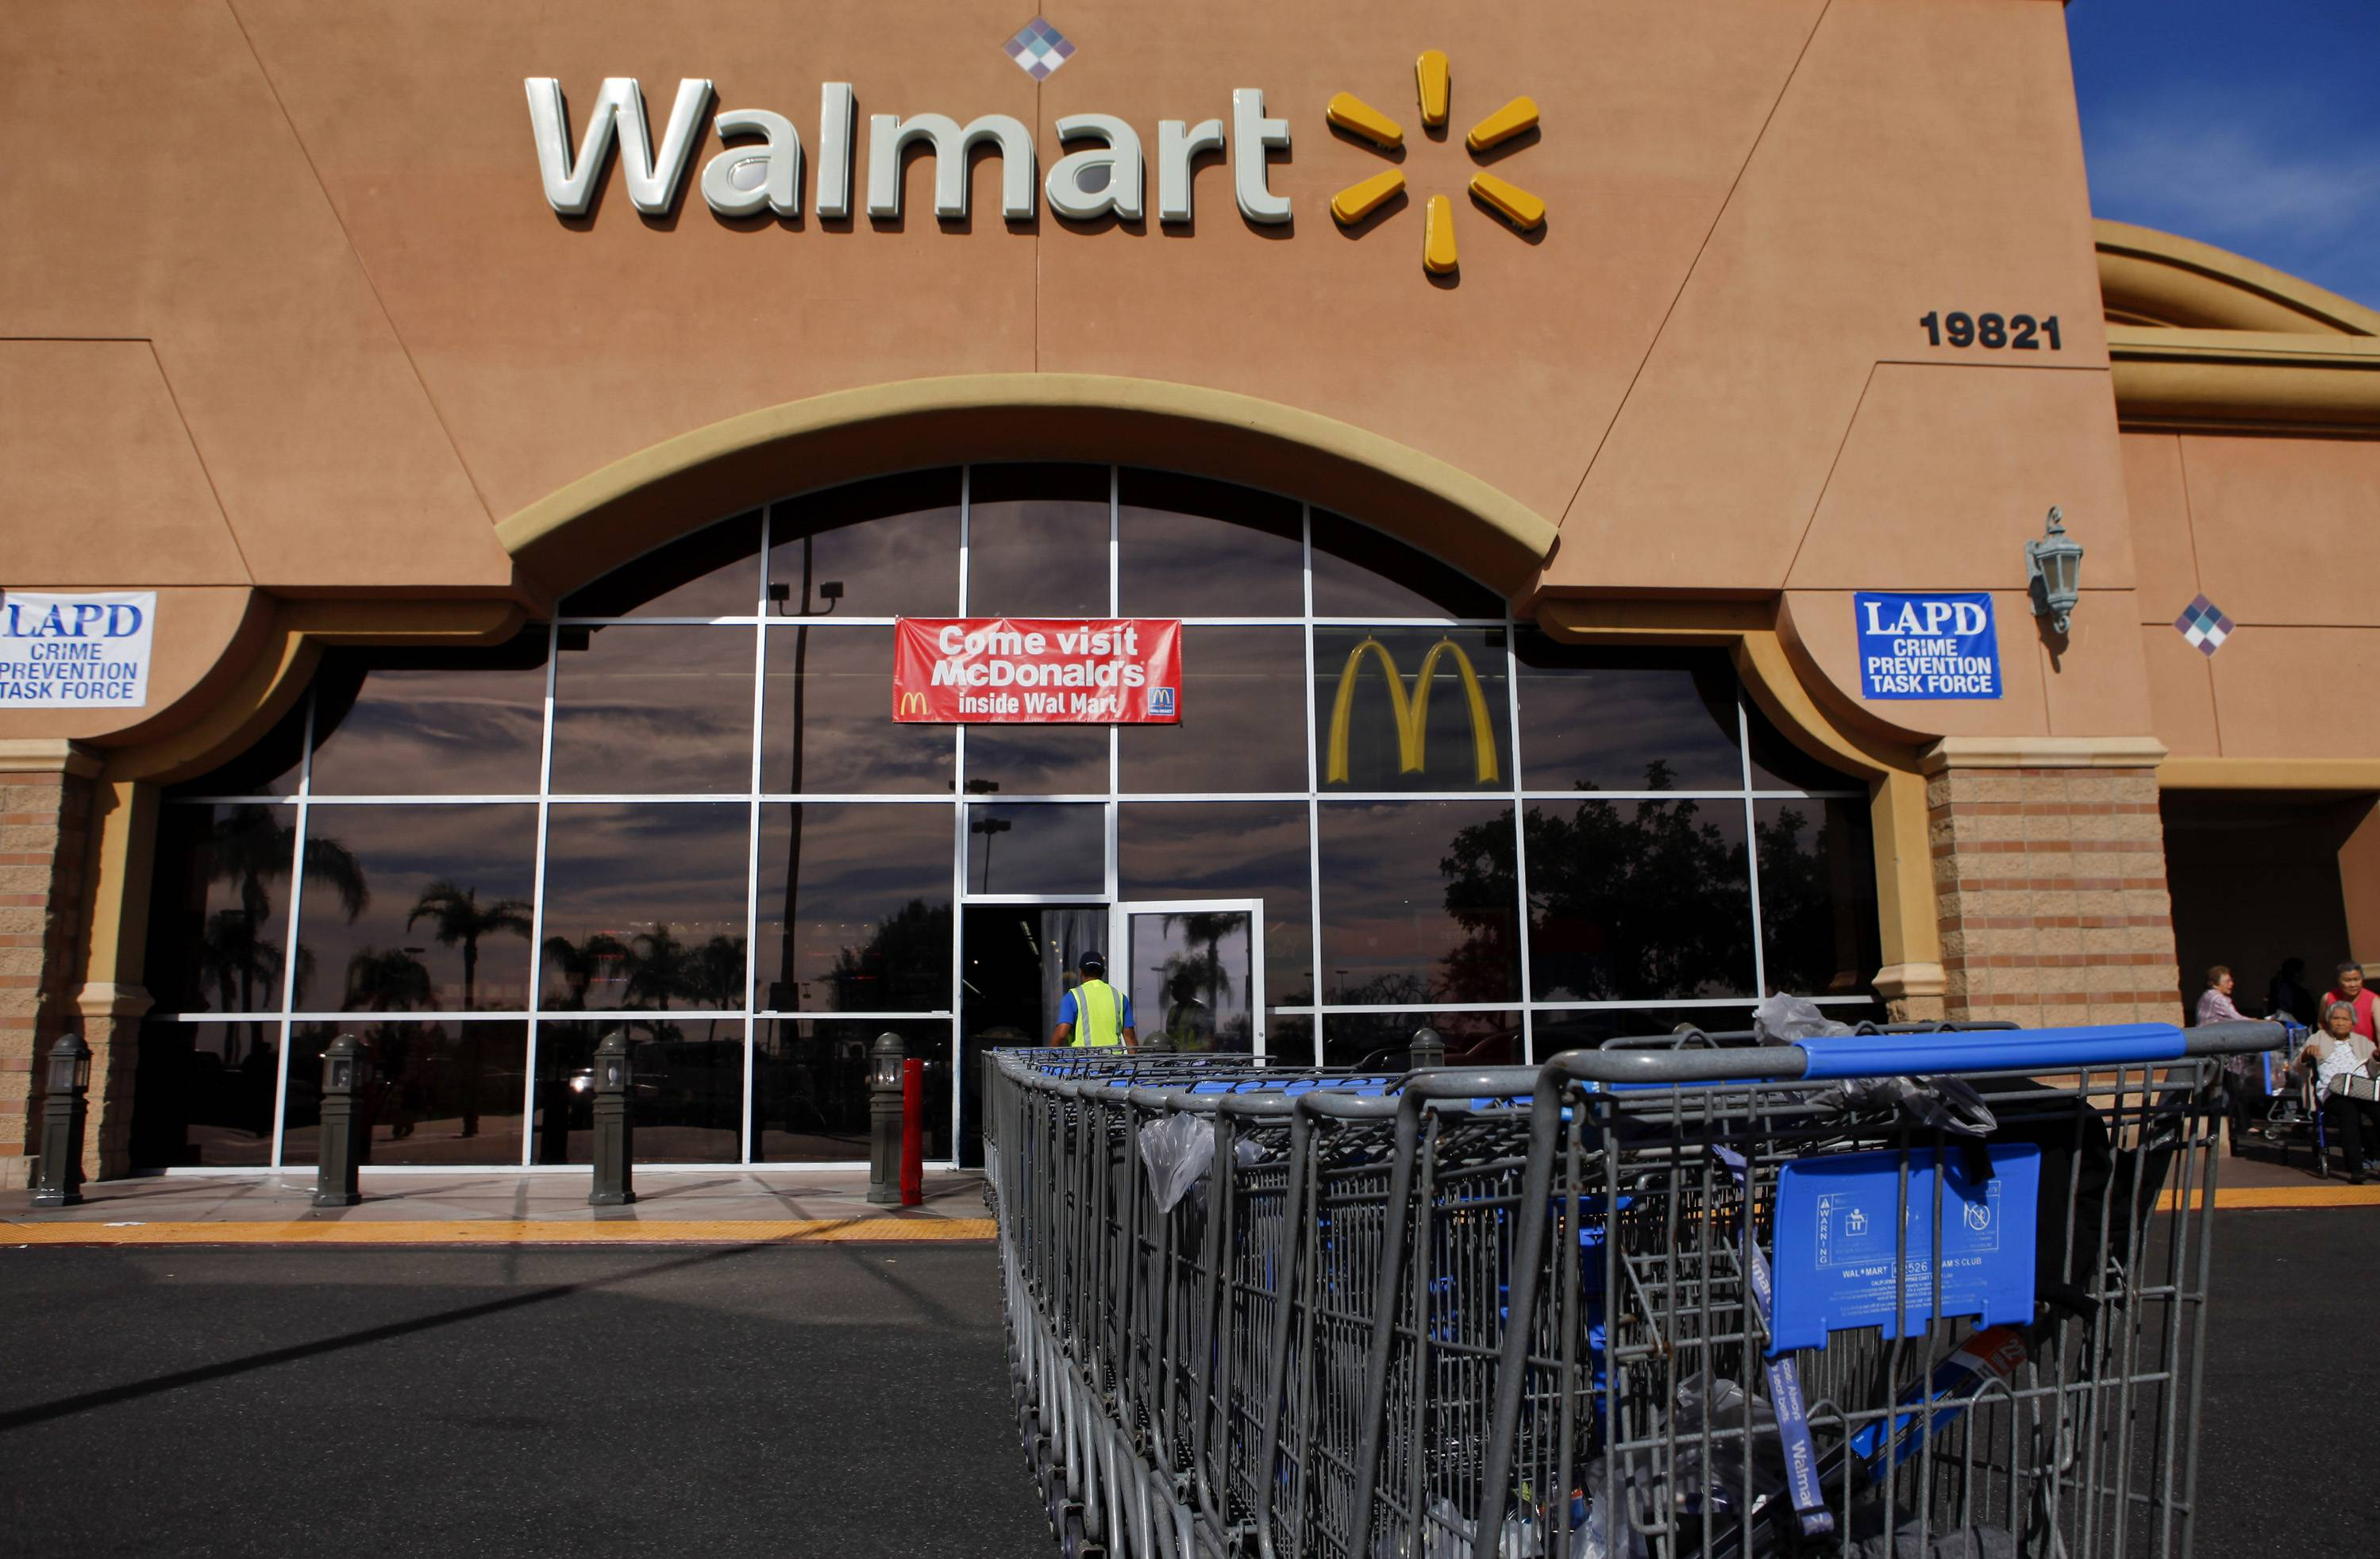 Low-cost leader Wal-Mart is using its massive size to drive down the price of organic food items from tomato paste to chicken broth to make it more affordable for its low-income customers.